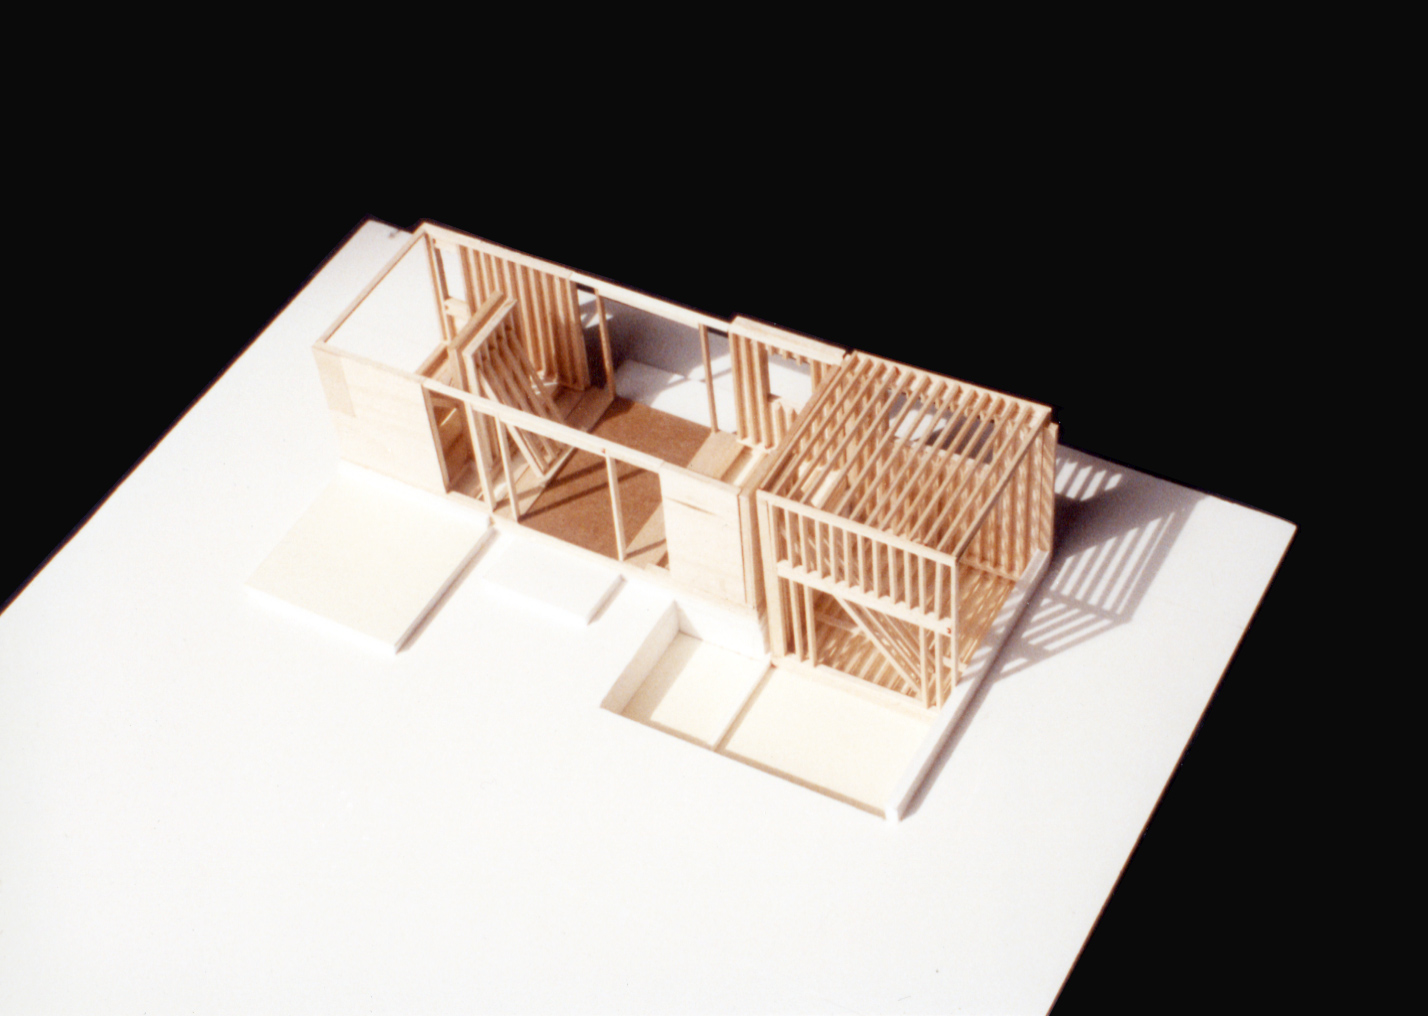 UPenn: Prefab Housing Experiment. Balsa. 1991